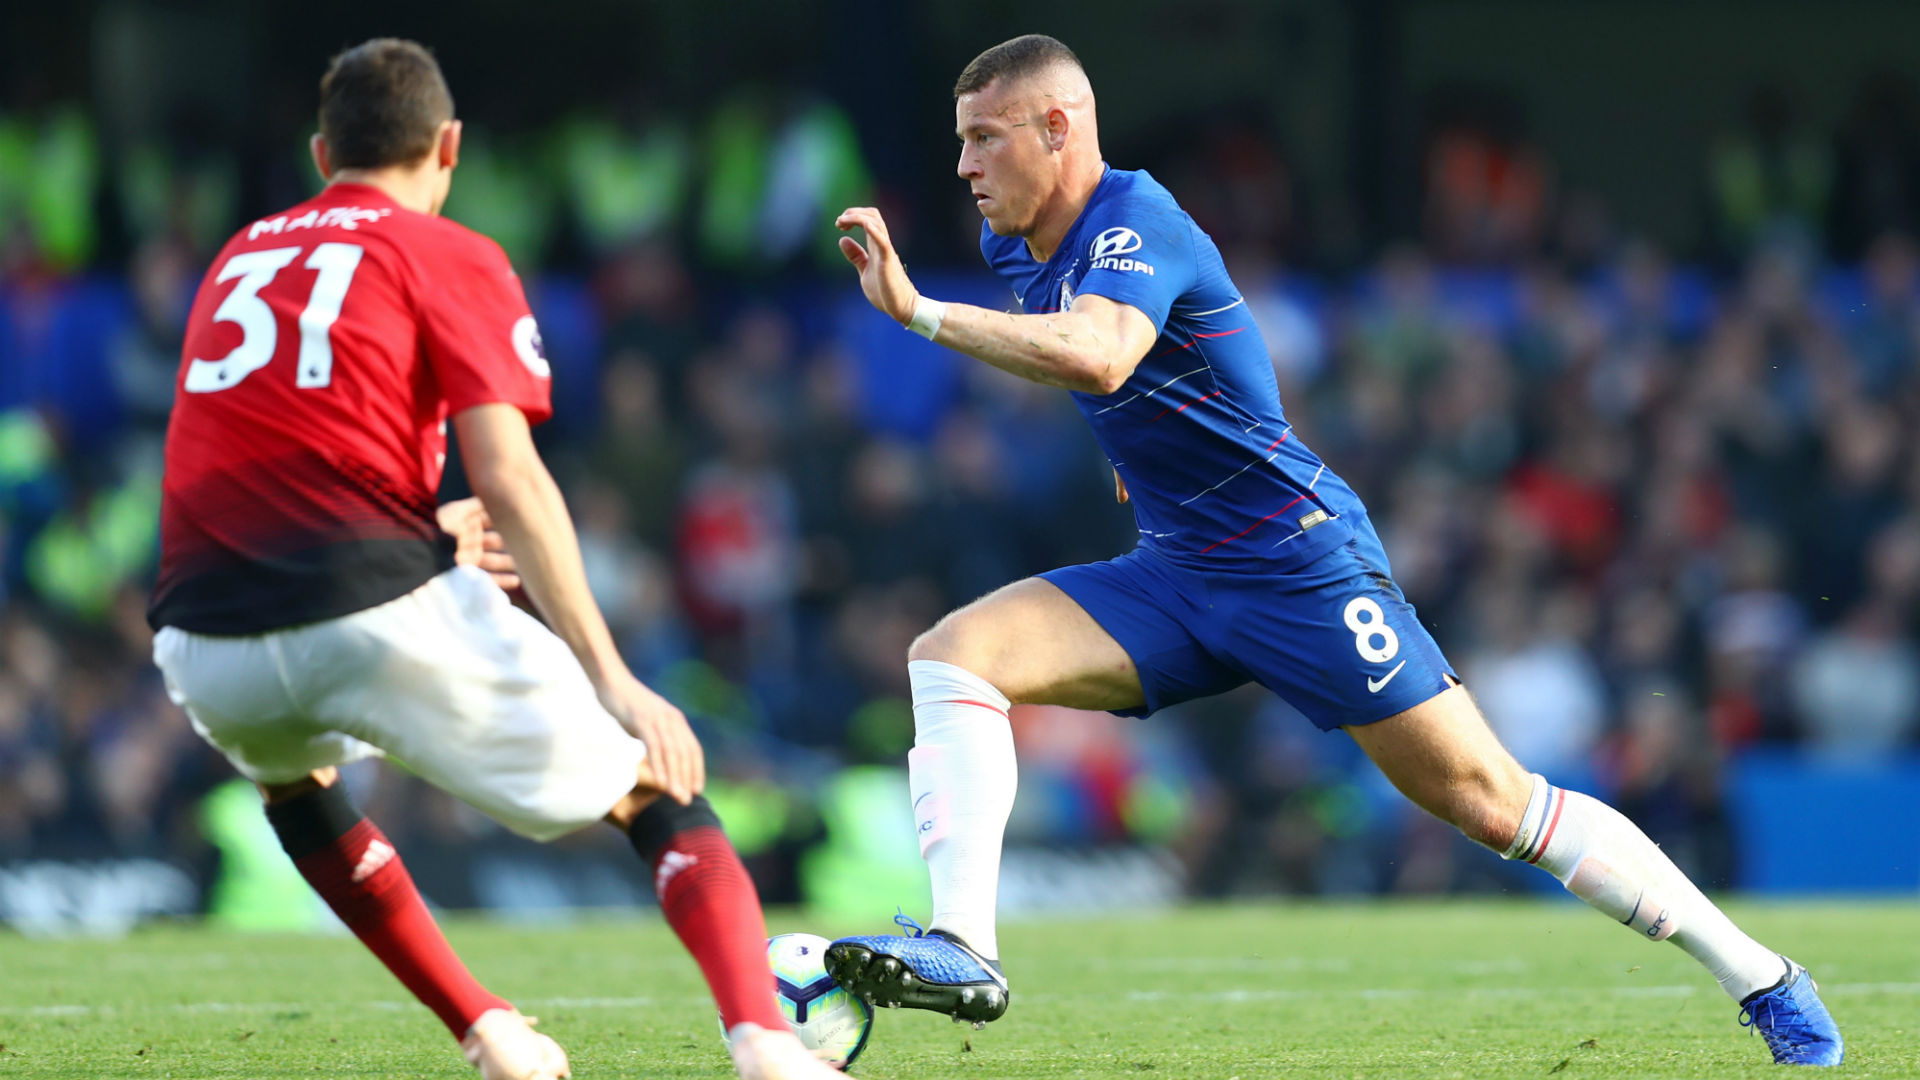 Martin Keown states his prediction for Chelsea FC v Man United